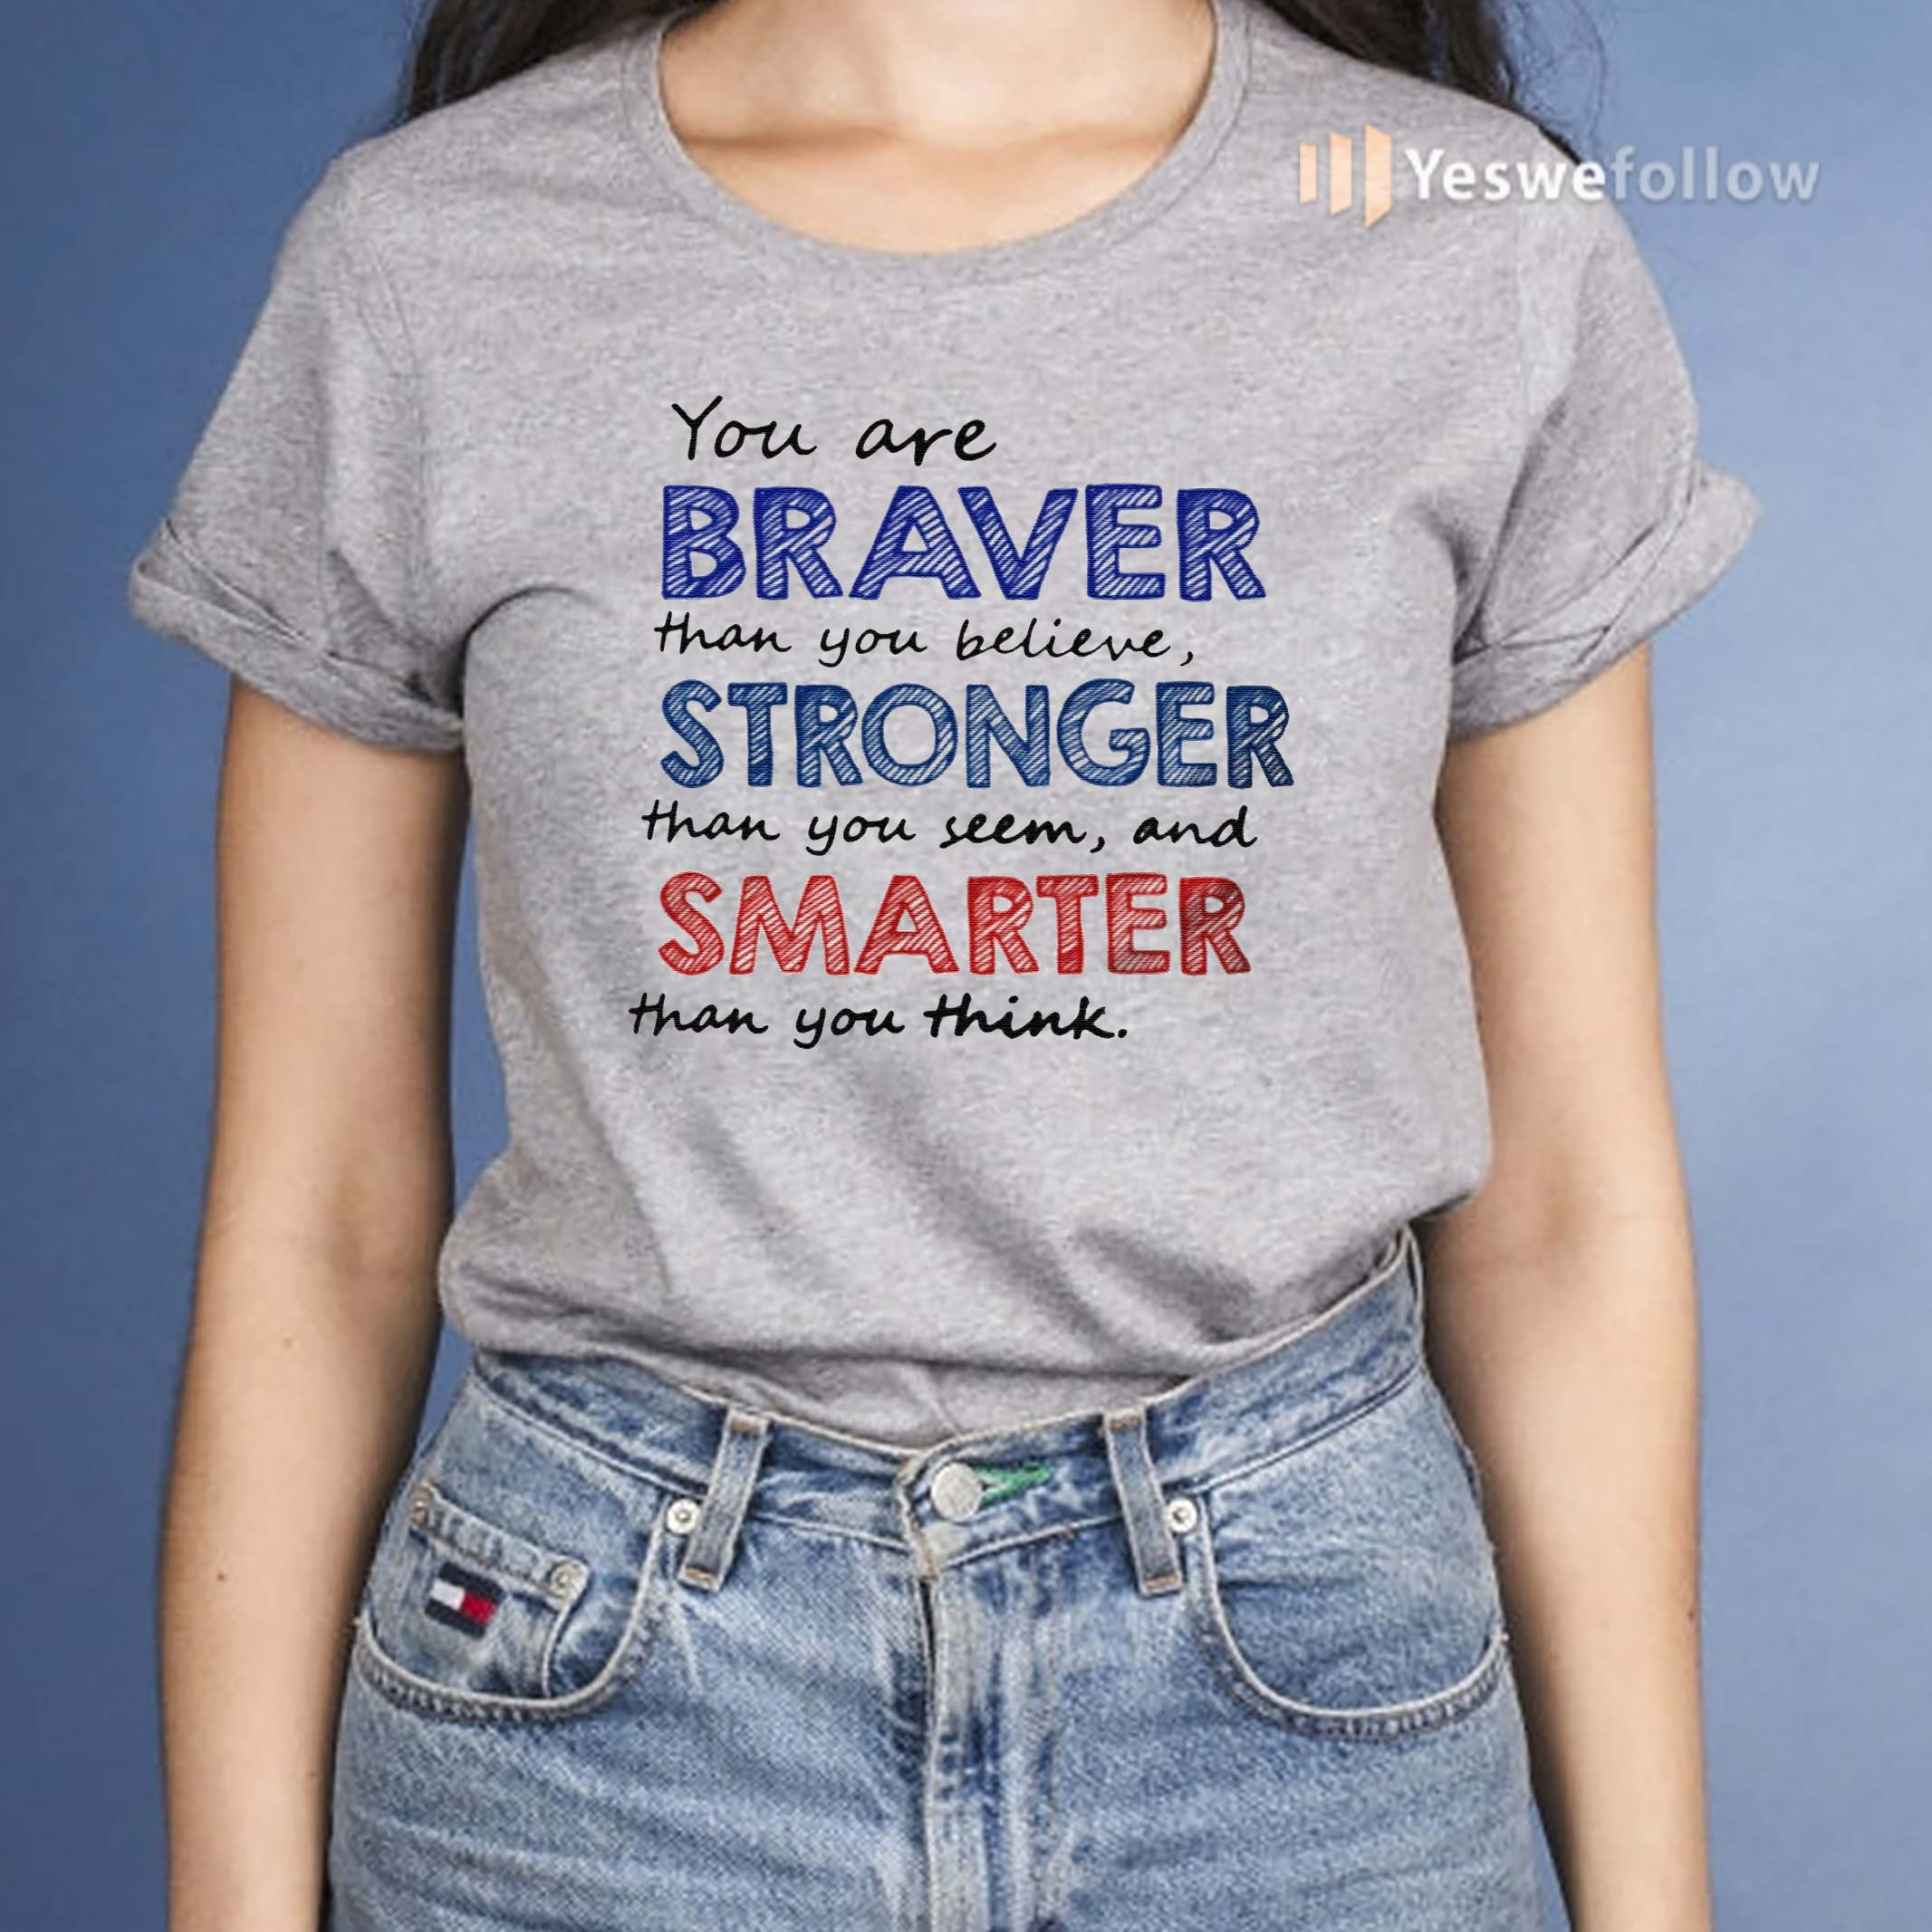 You-Are-Braver-Than-You-Believe-Stronger-Than-Classic-T-Shirts